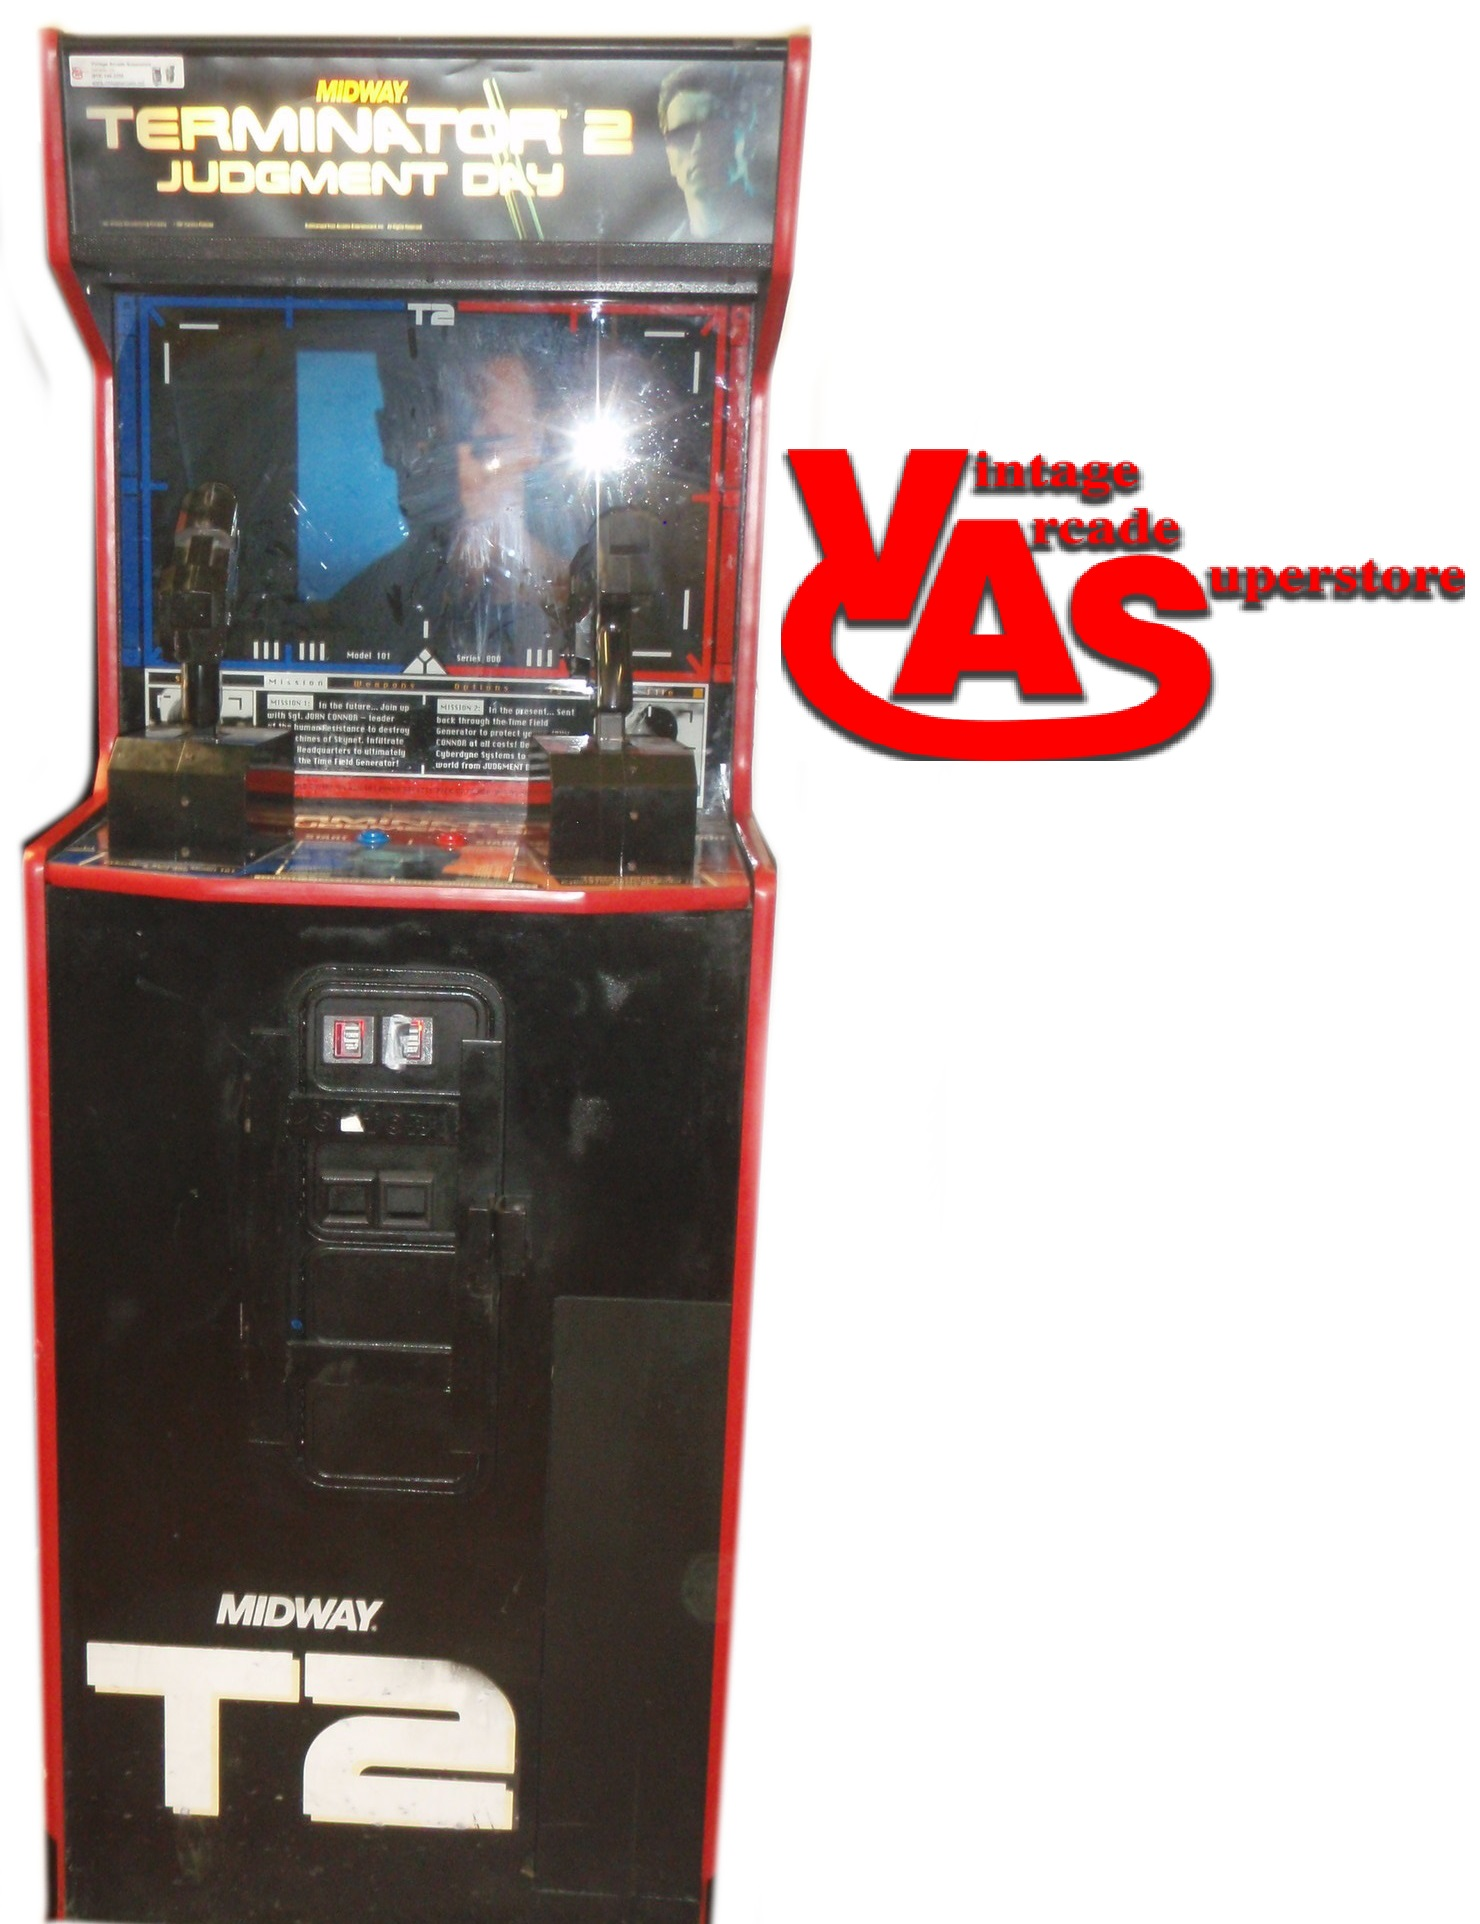 Terminator 2 arcade online game funny japanese tv game show 2